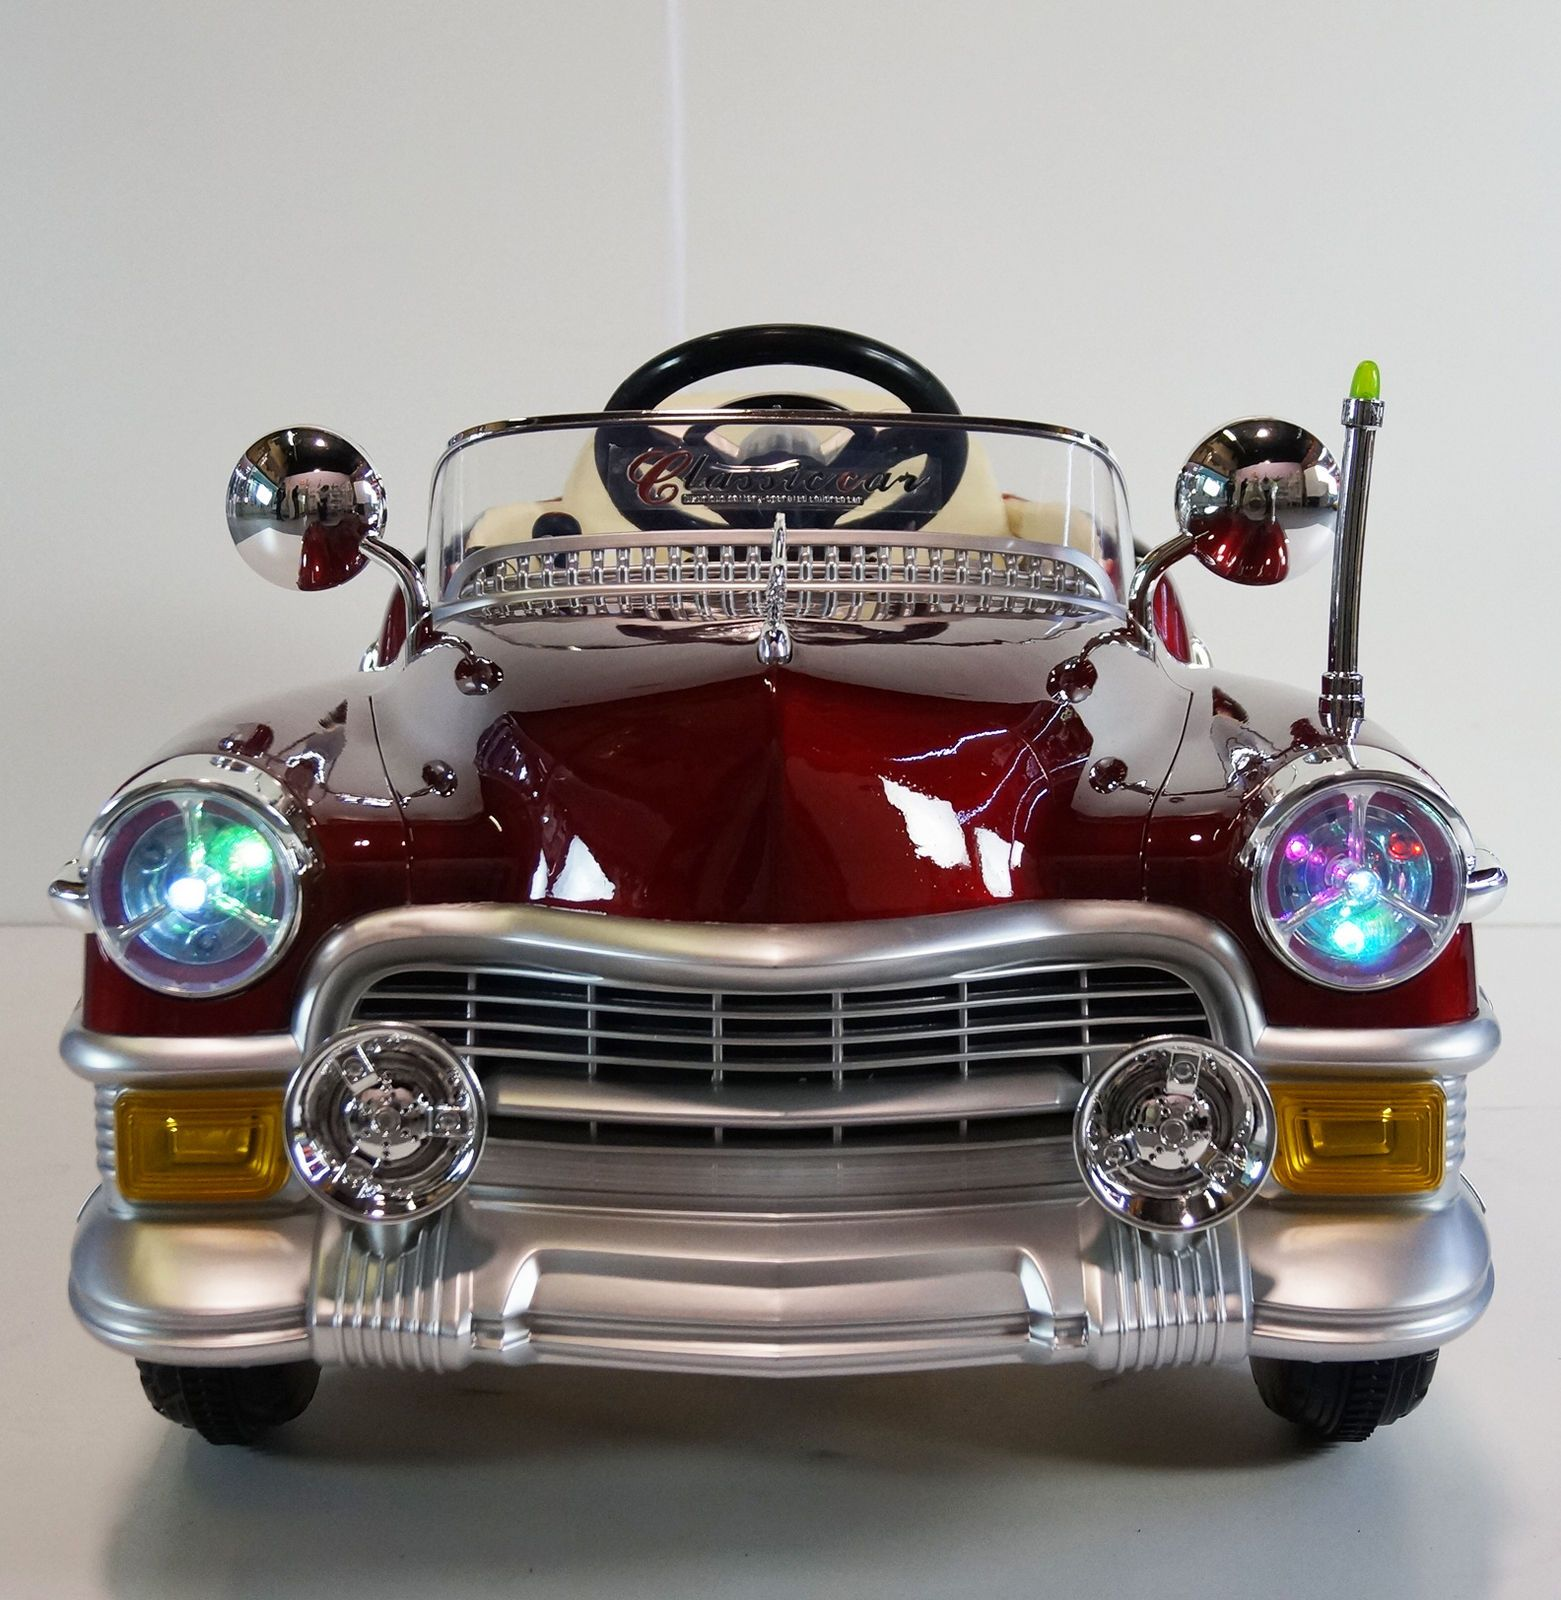 Classic cadillac style ride on toy car 12volts battery operated ...